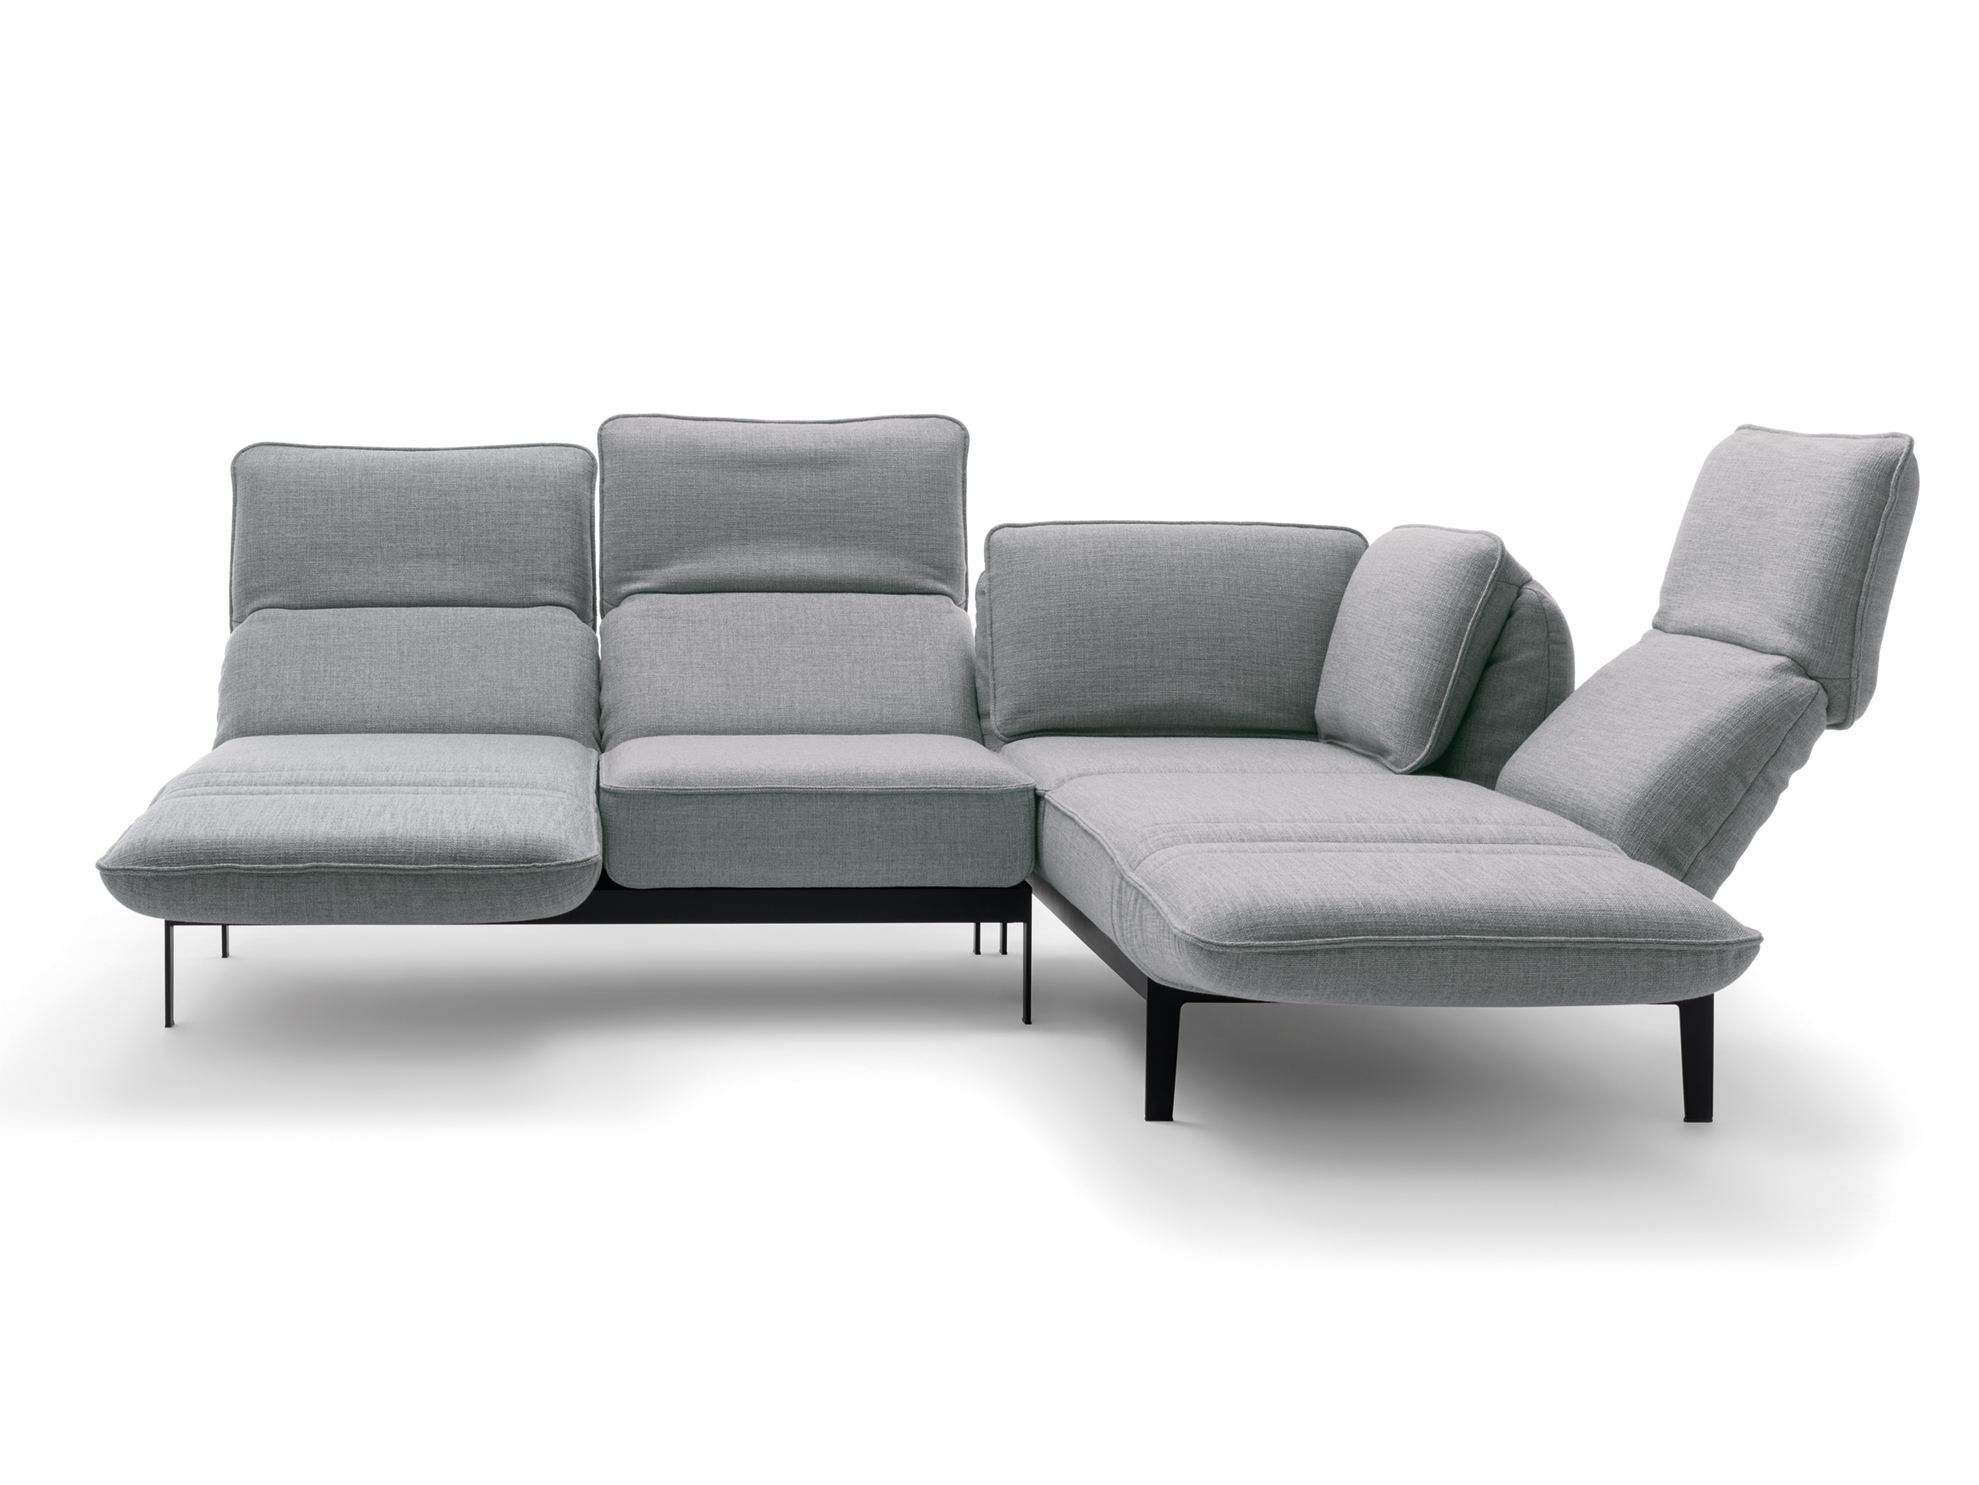 Mera corner sofa mera collection by rolf benz design for Sofa benz rolf